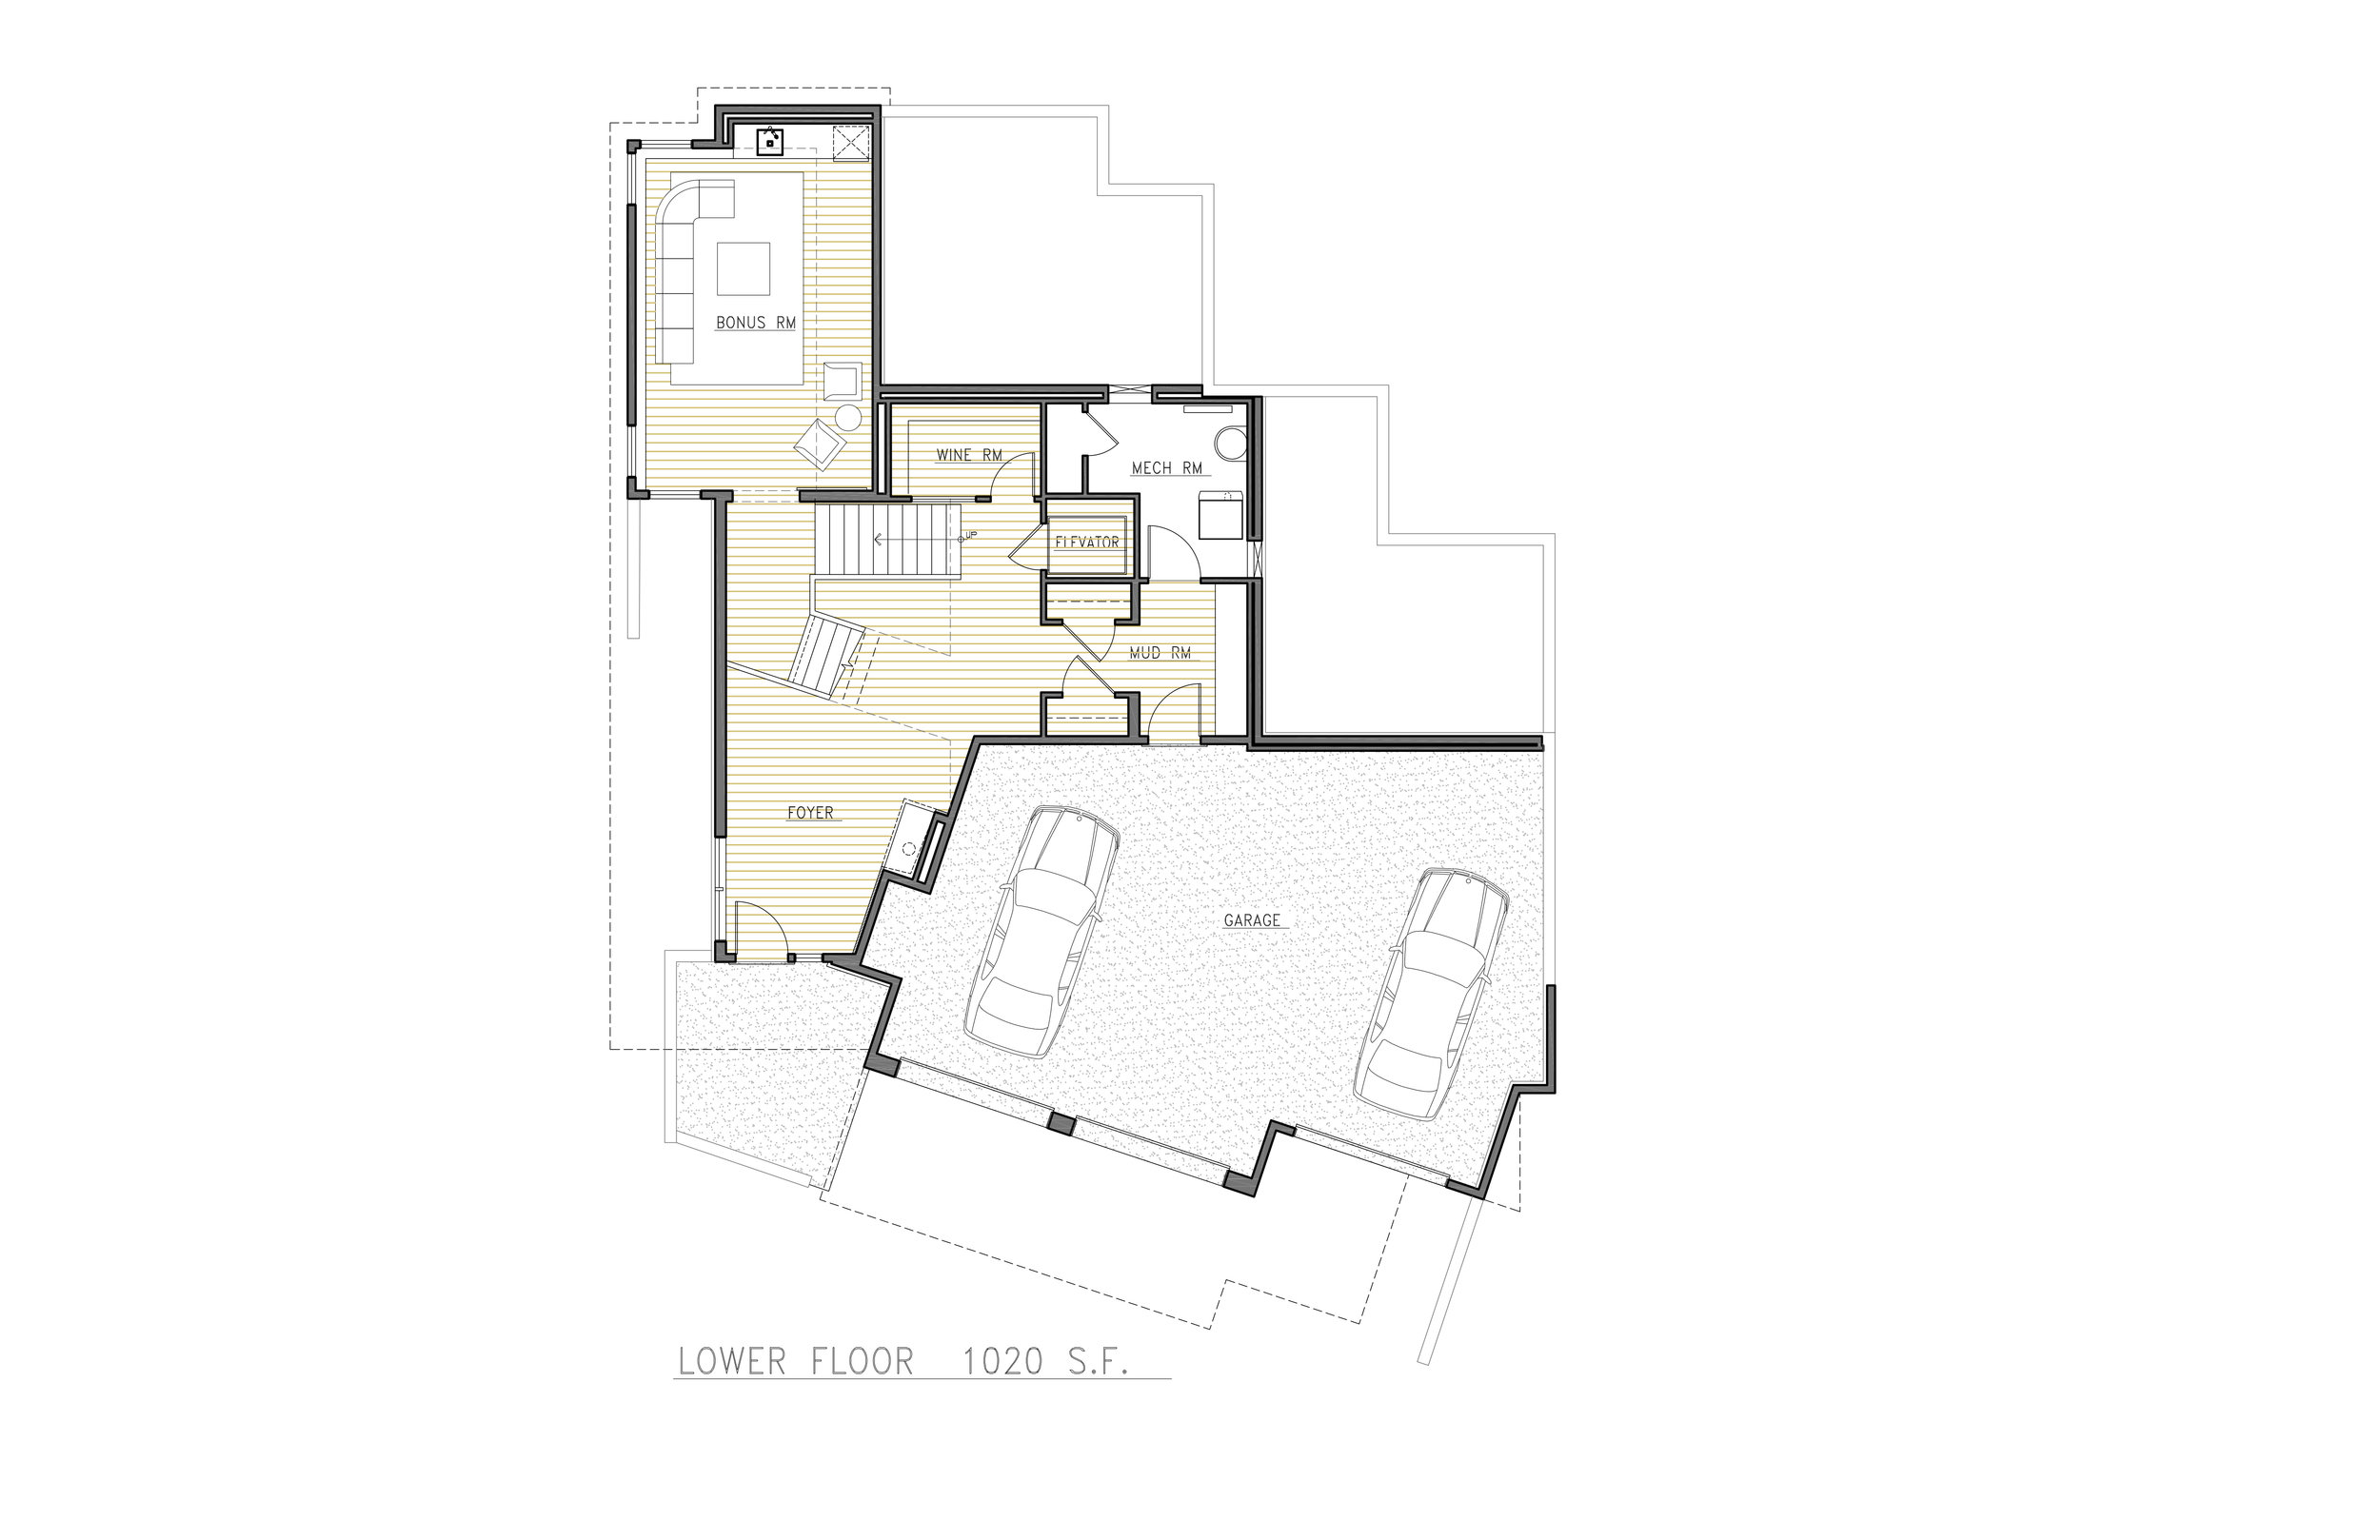 3801 PF1 Mrktg Lower Flr Plan.jpg